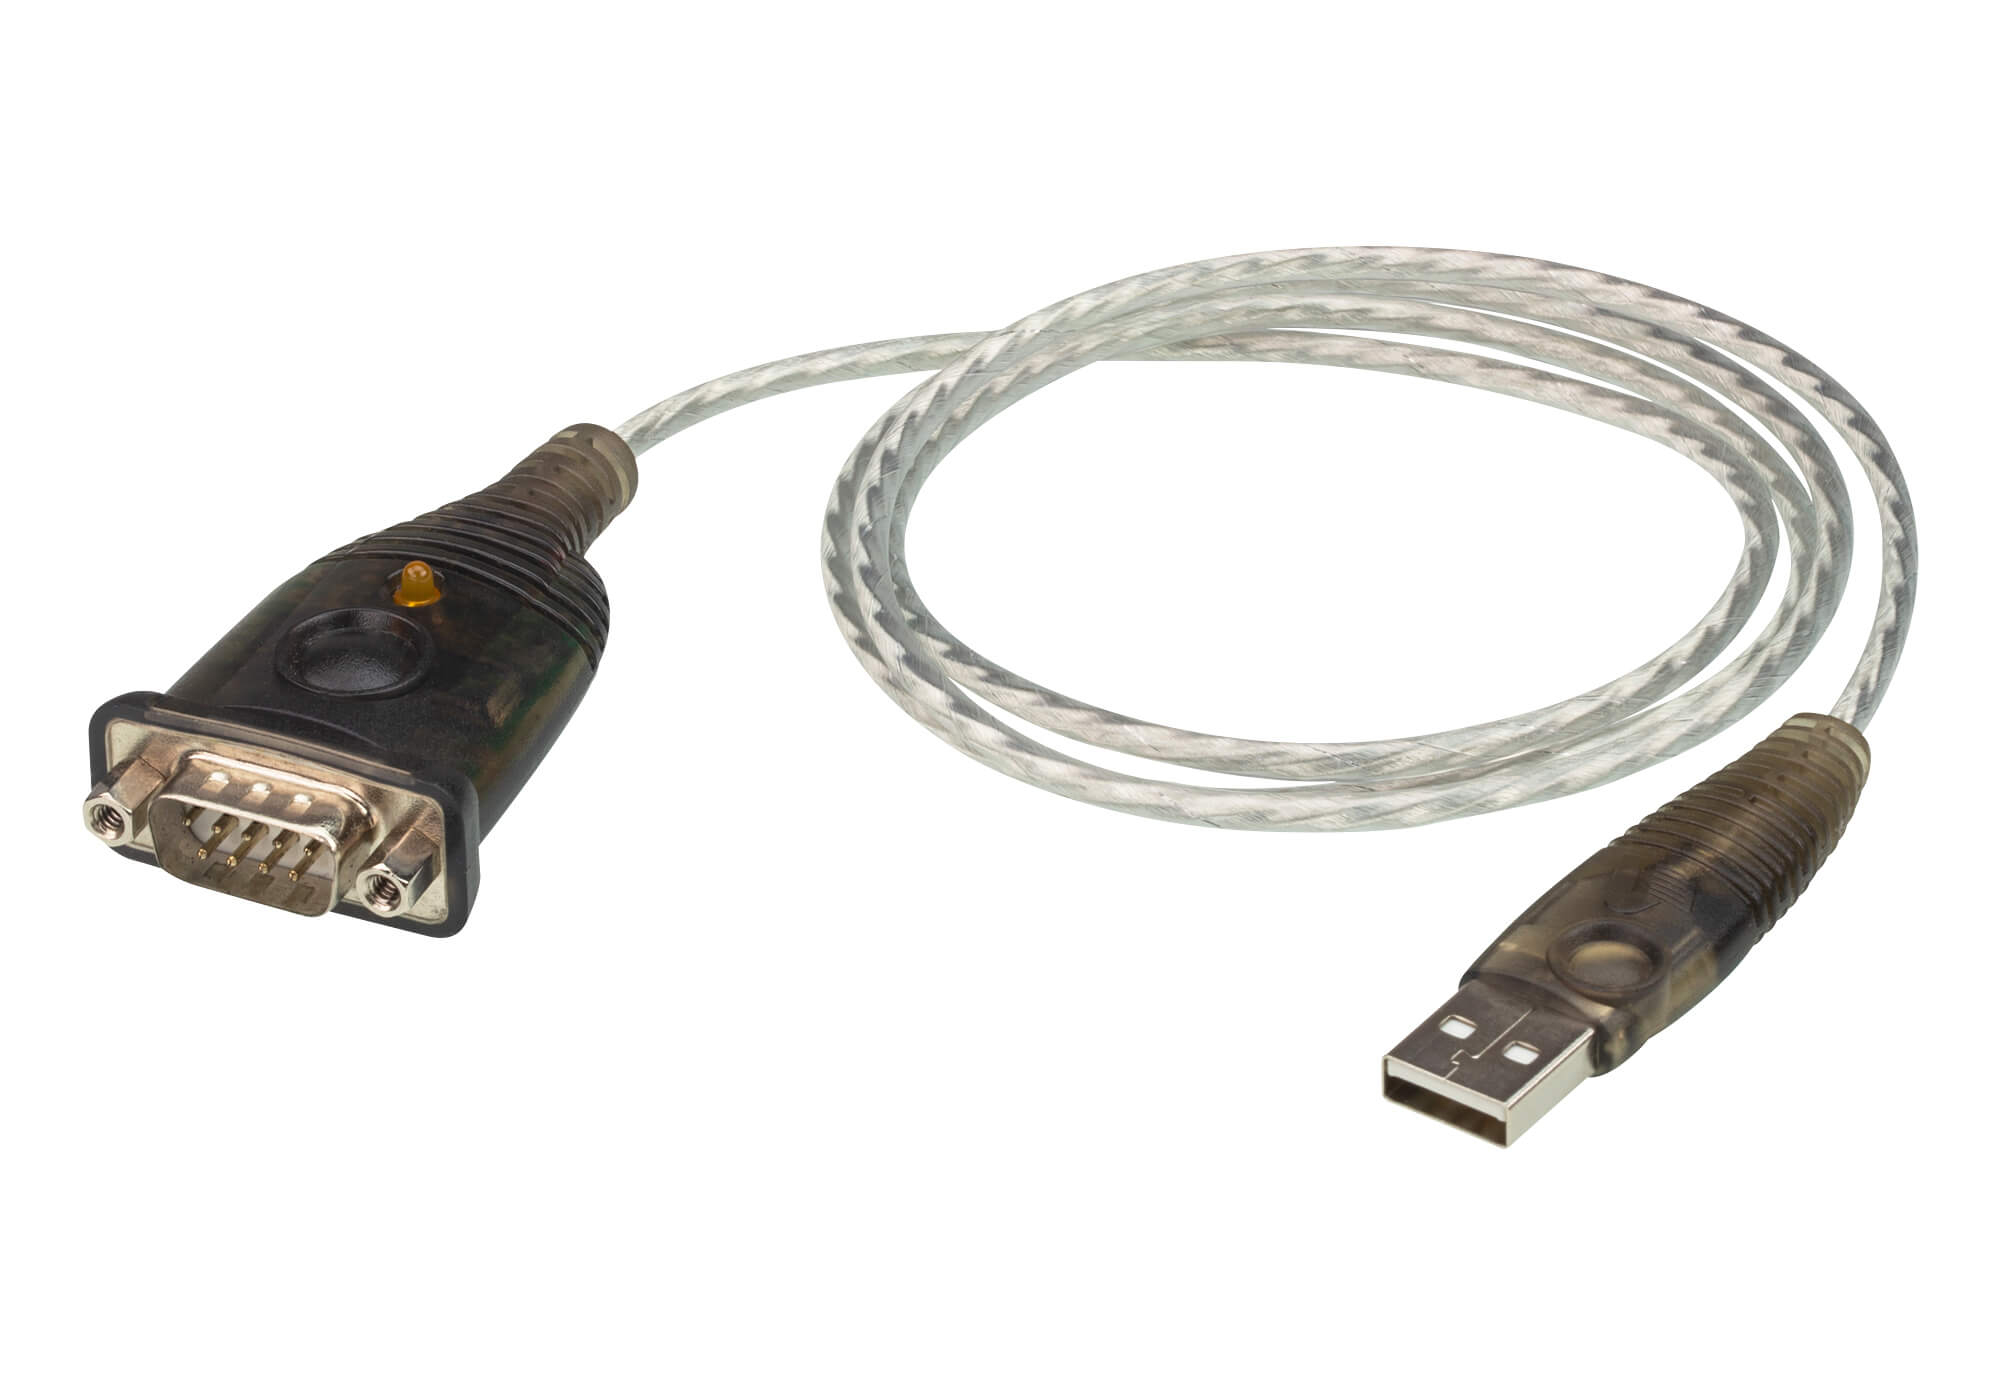 Rs232 To Usb Wiring Diagram   Wiring Library - Usb Rs232 Wiring Diagram